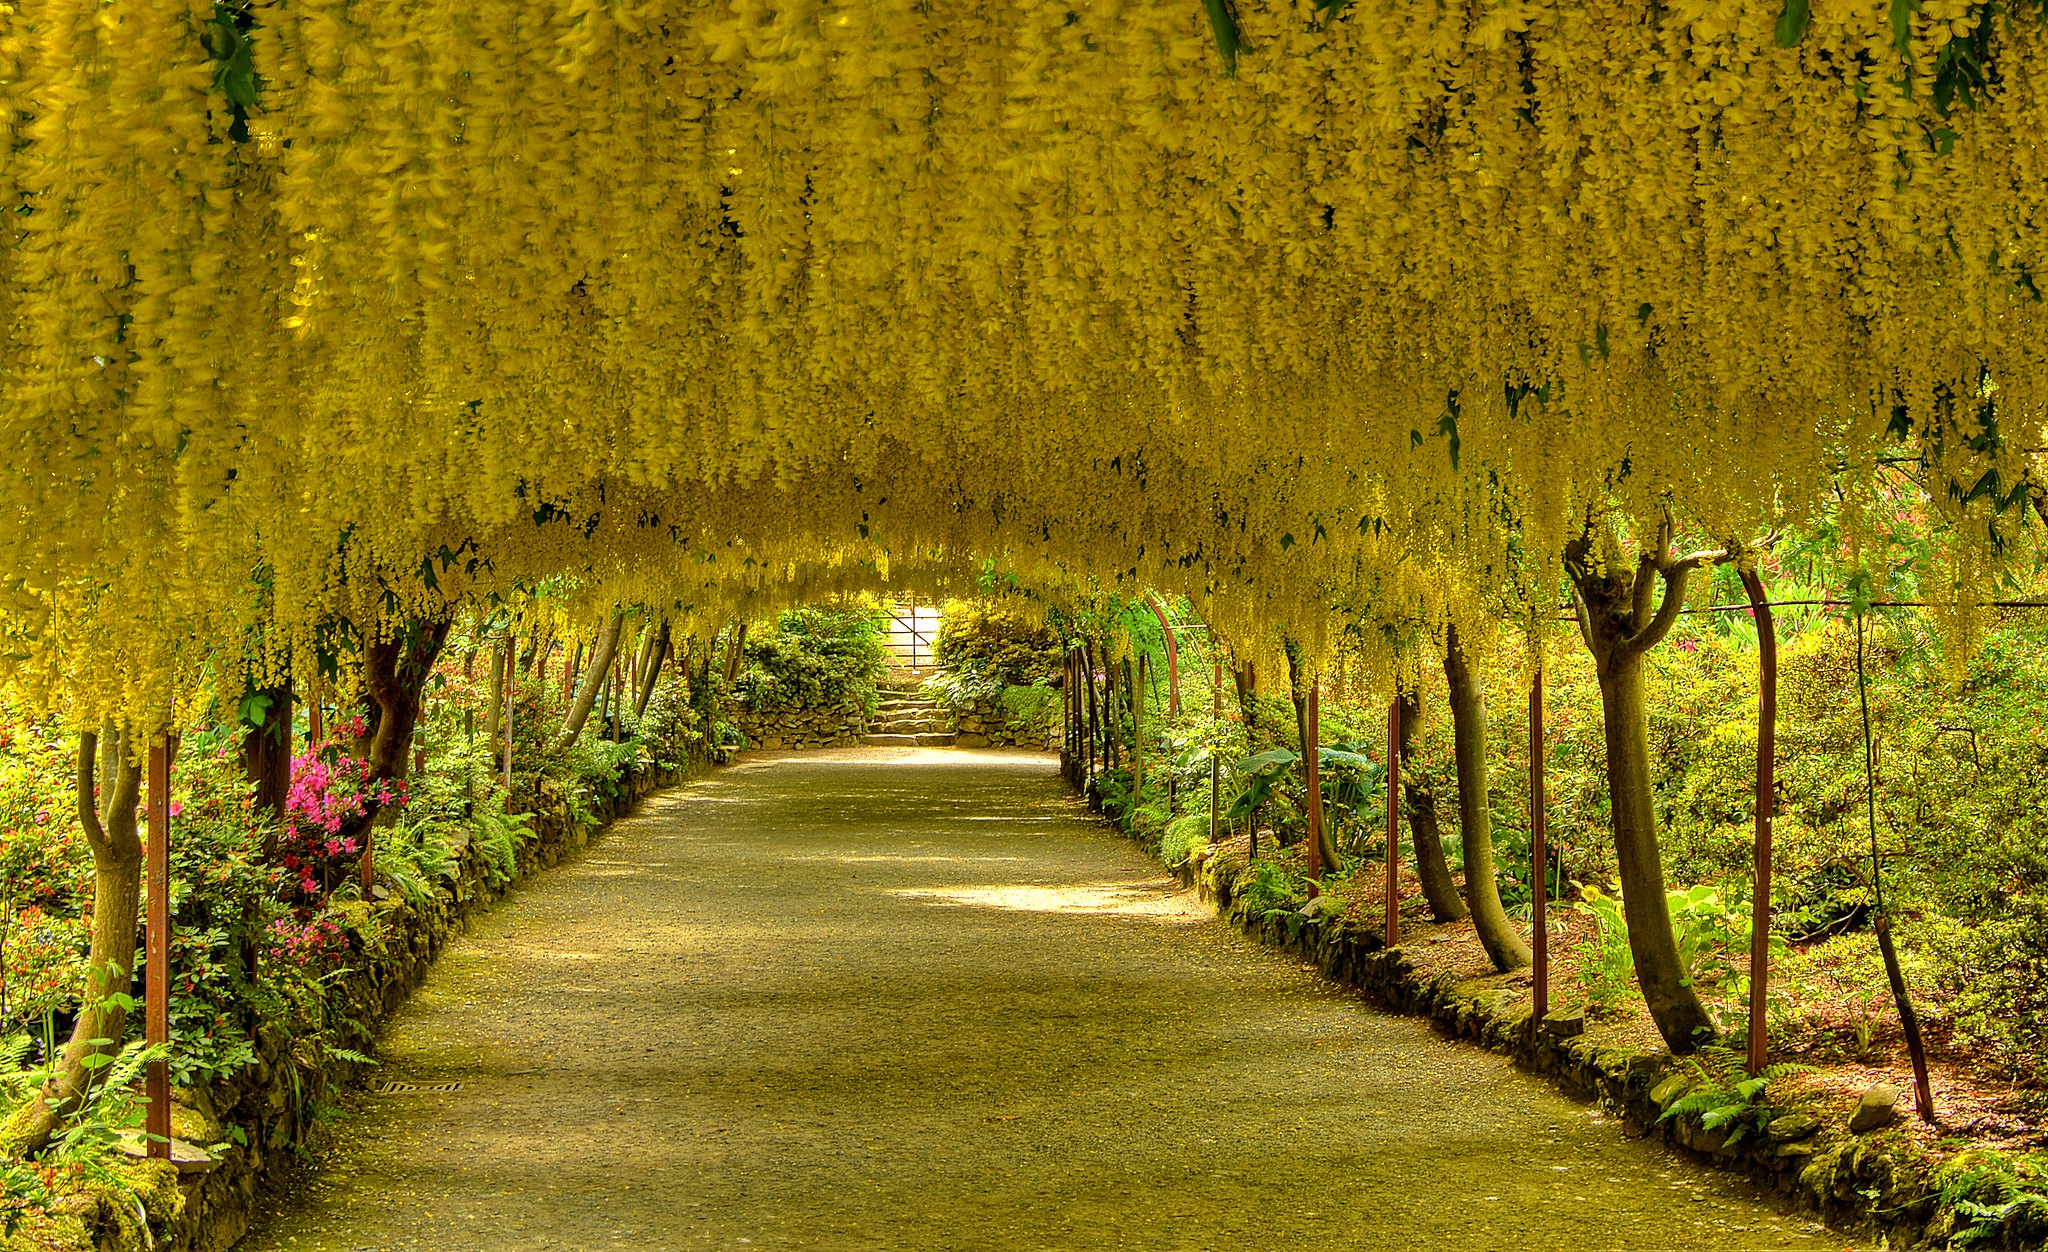 Outstanding Laburnum Arch In Bodnant Gardens North Wales  Pics With Gorgeous Laburnum Arch In Bodnant Gardens North Wales With Delectable Desperate Housewives Gardener Also Spring Gardens Post Office Opening Times In Addition Rooftop Garden New York And Small Garden Ideas Uk As Well As Garden Gnome Lore Additionally Garden San Antonio From Redditcom With   Gorgeous Laburnum Arch In Bodnant Gardens North Wales  Pics With Delectable Laburnum Arch In Bodnant Gardens North Wales And Outstanding Desperate Housewives Gardener Also Spring Gardens Post Office Opening Times In Addition Rooftop Garden New York From Redditcom